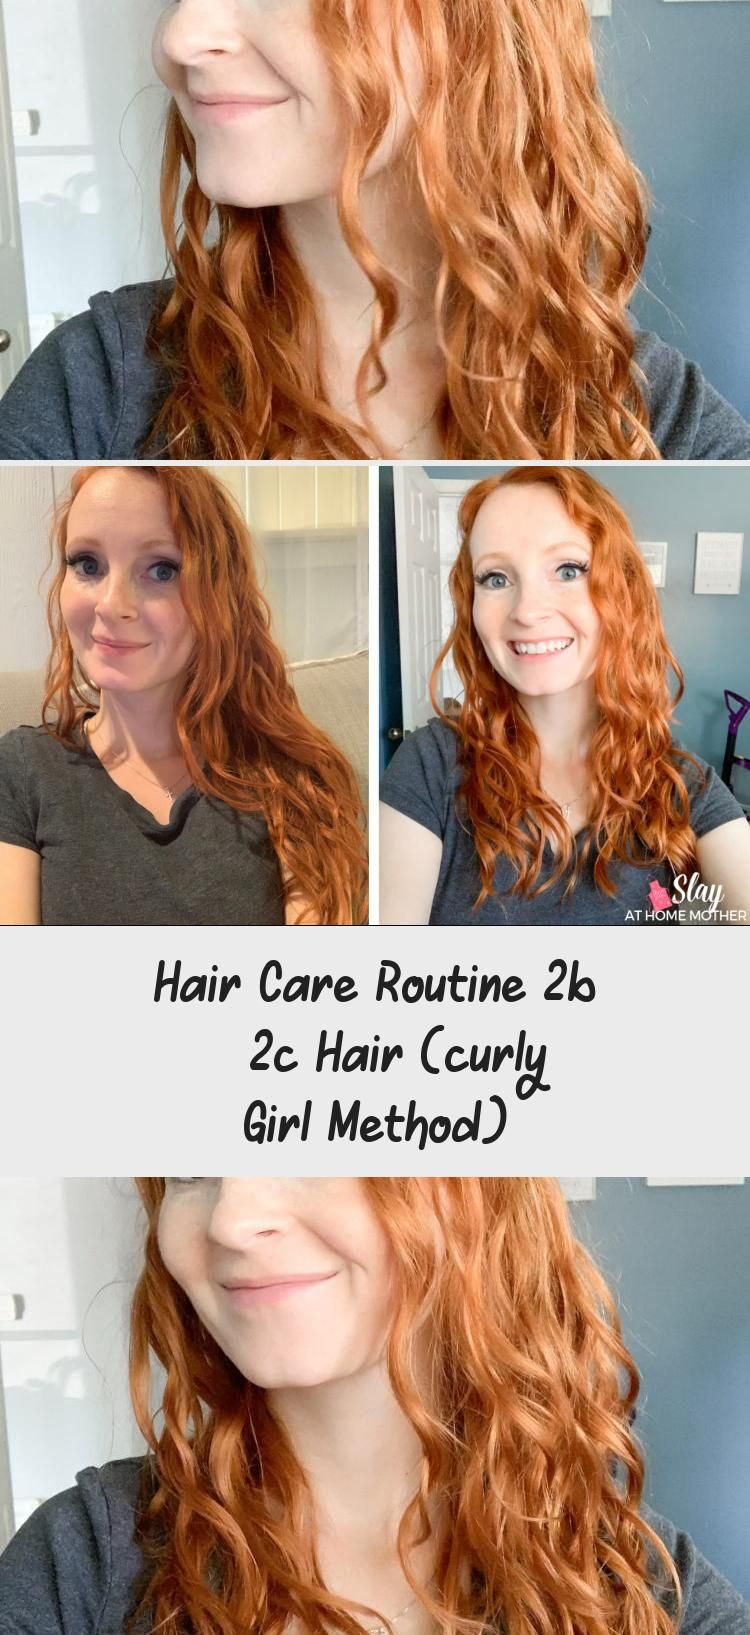 Hair Care Routine 2b 2c Hair Curly Girl Method In 2020 With